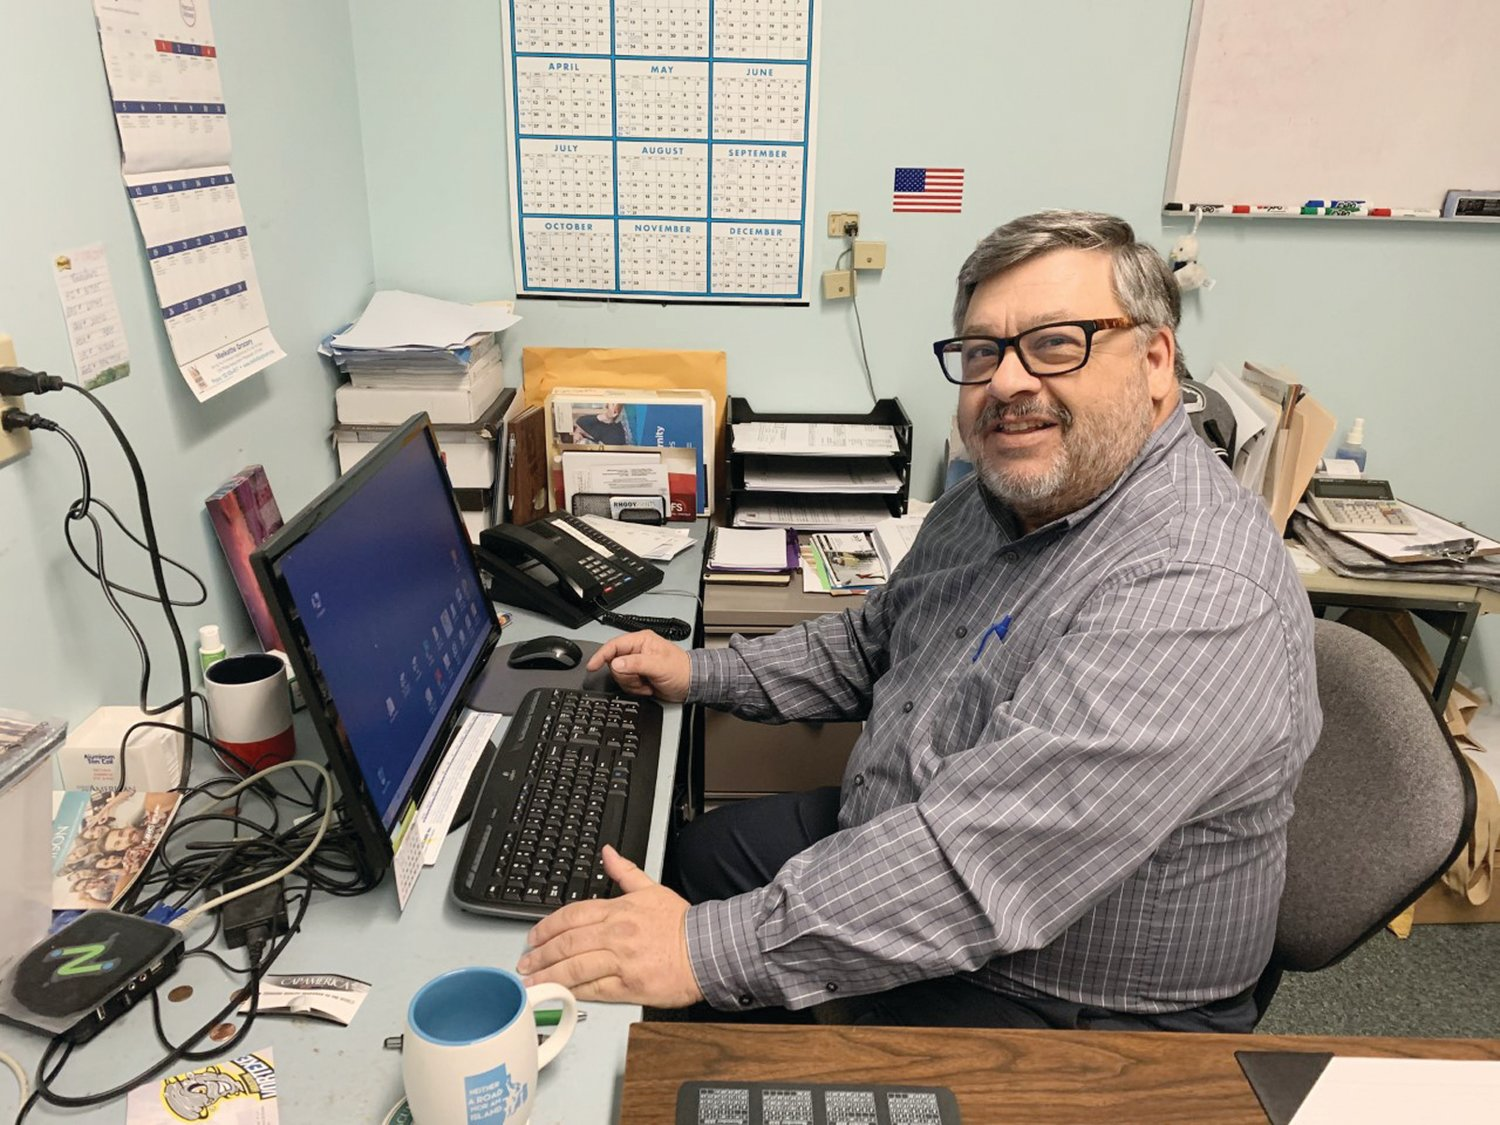 Bob Giberti, seen here at his familiar desk, is an expert in promotional products and marketing.  As the head of RhodyPrints, he will guide you through whatever products you need and can budget for to give your business more exposure or to make your event unforgettable.